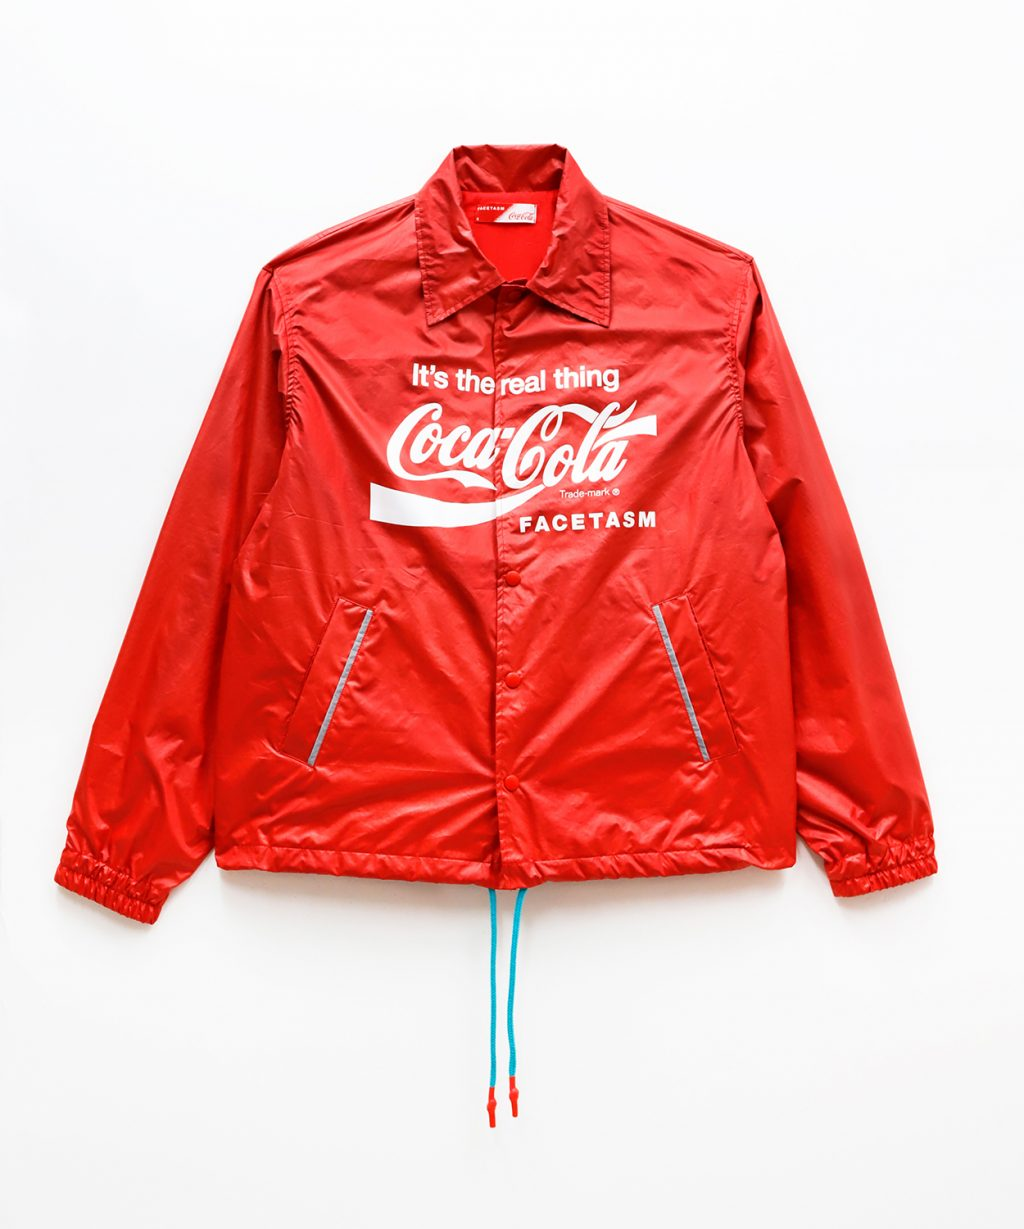 FACE-COKE-COACH-JACKET-red1-1024x1229.jpg